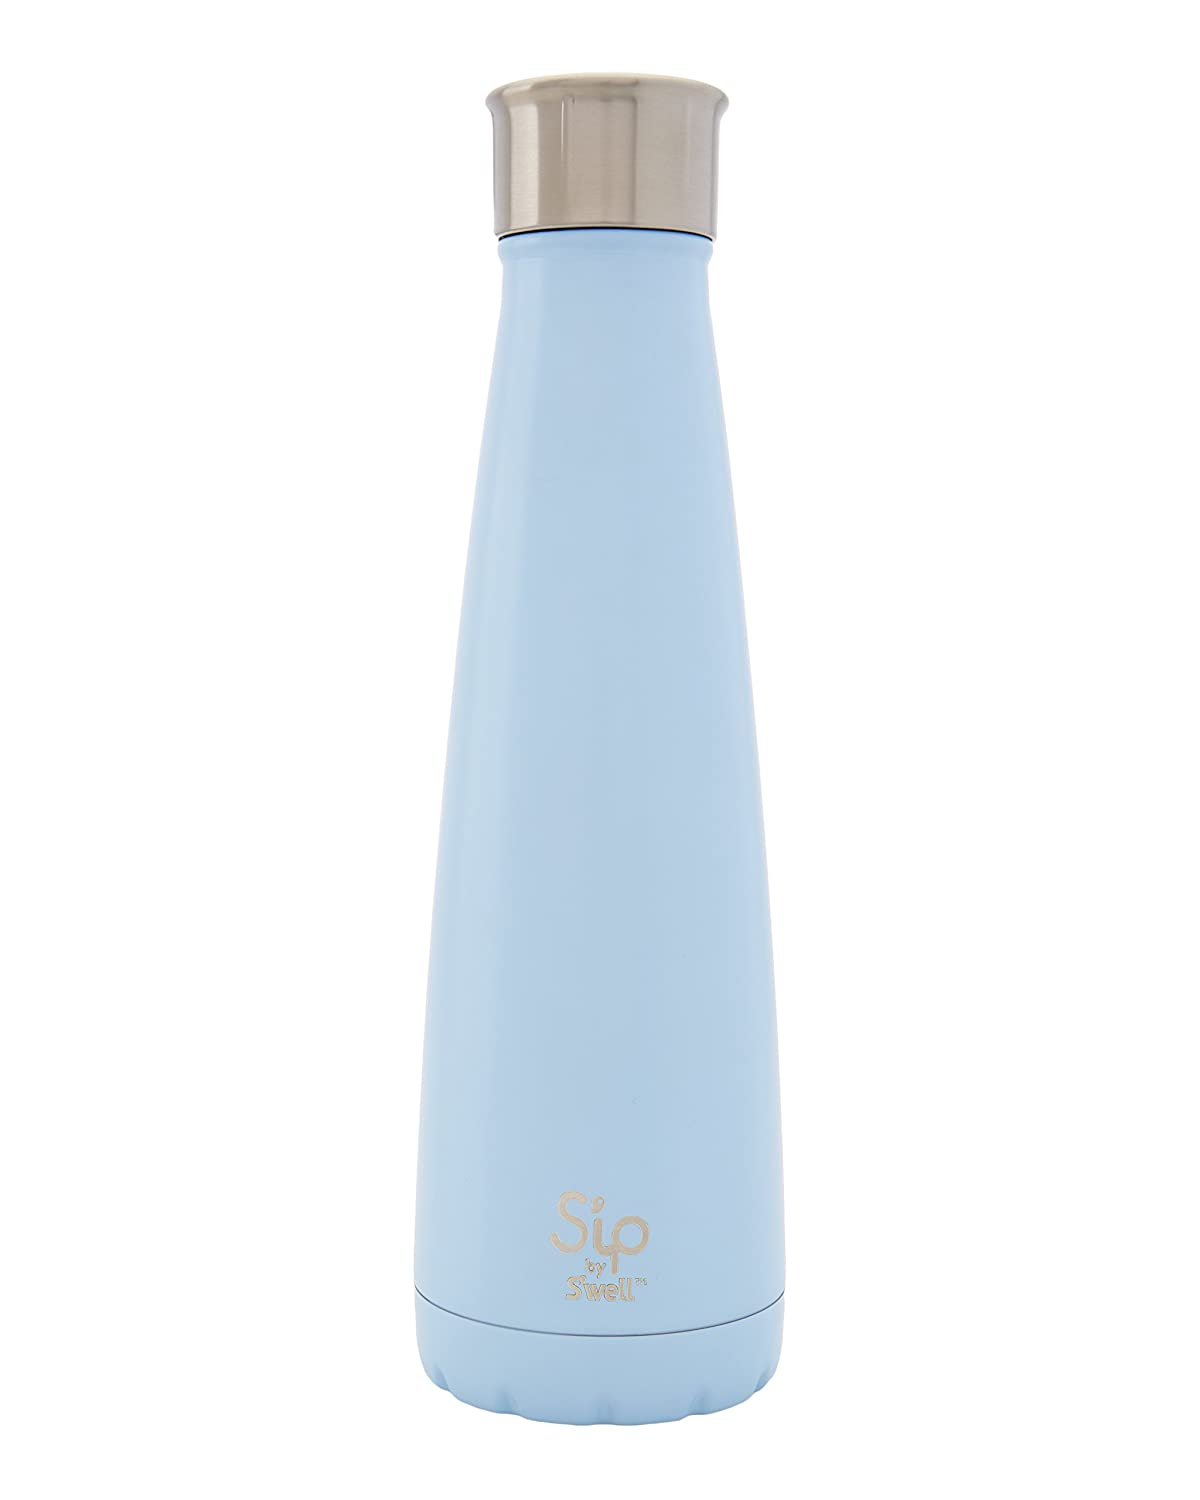 S'ip By S'well Vacuum Insulated Stainless Steel Water Bottle, Double Wall, 15 Oz, Cotton Candy Blue by S'well